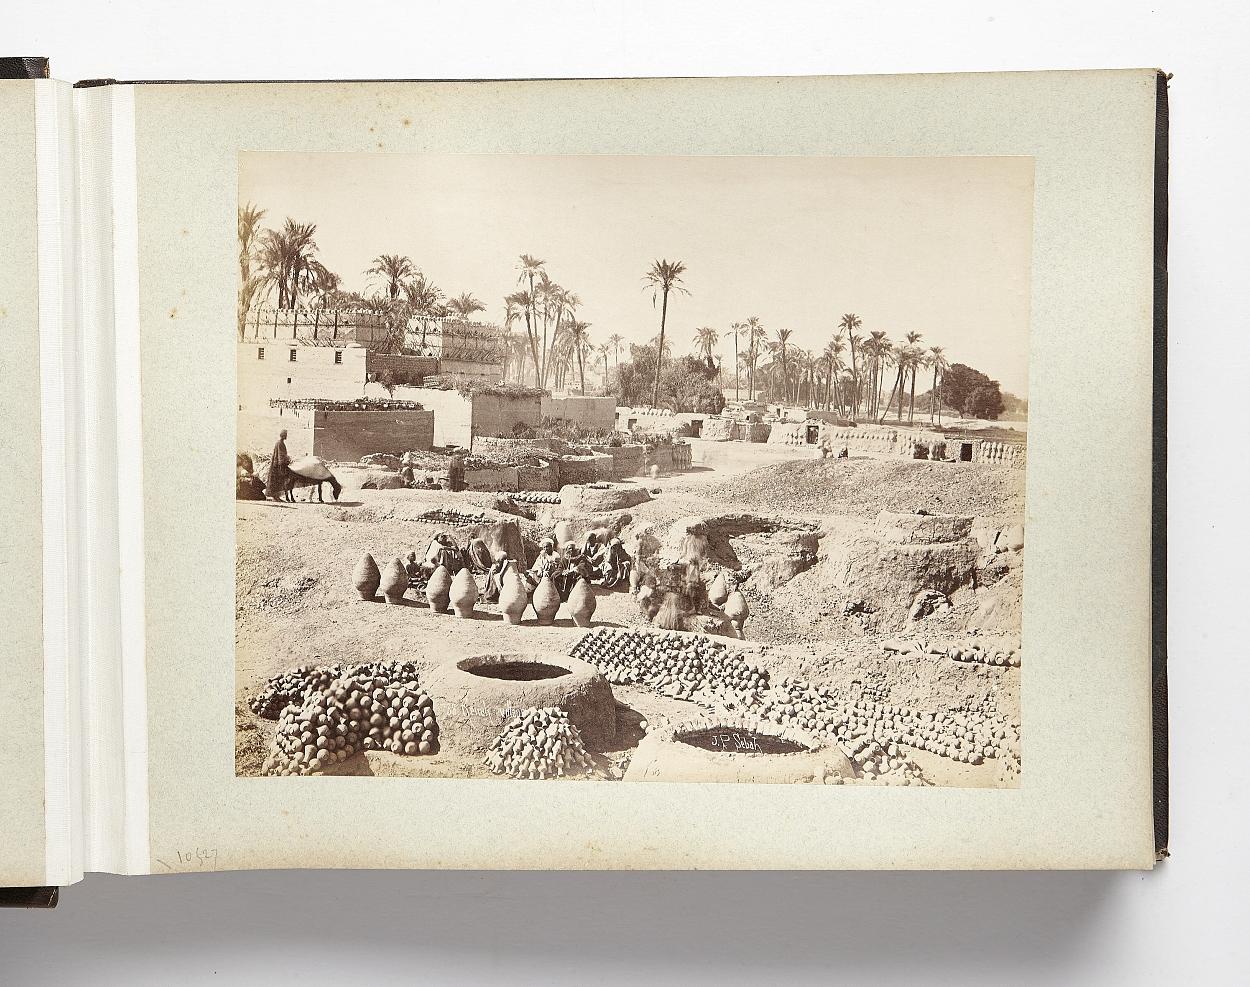 Photographs of Egypt c. 1890